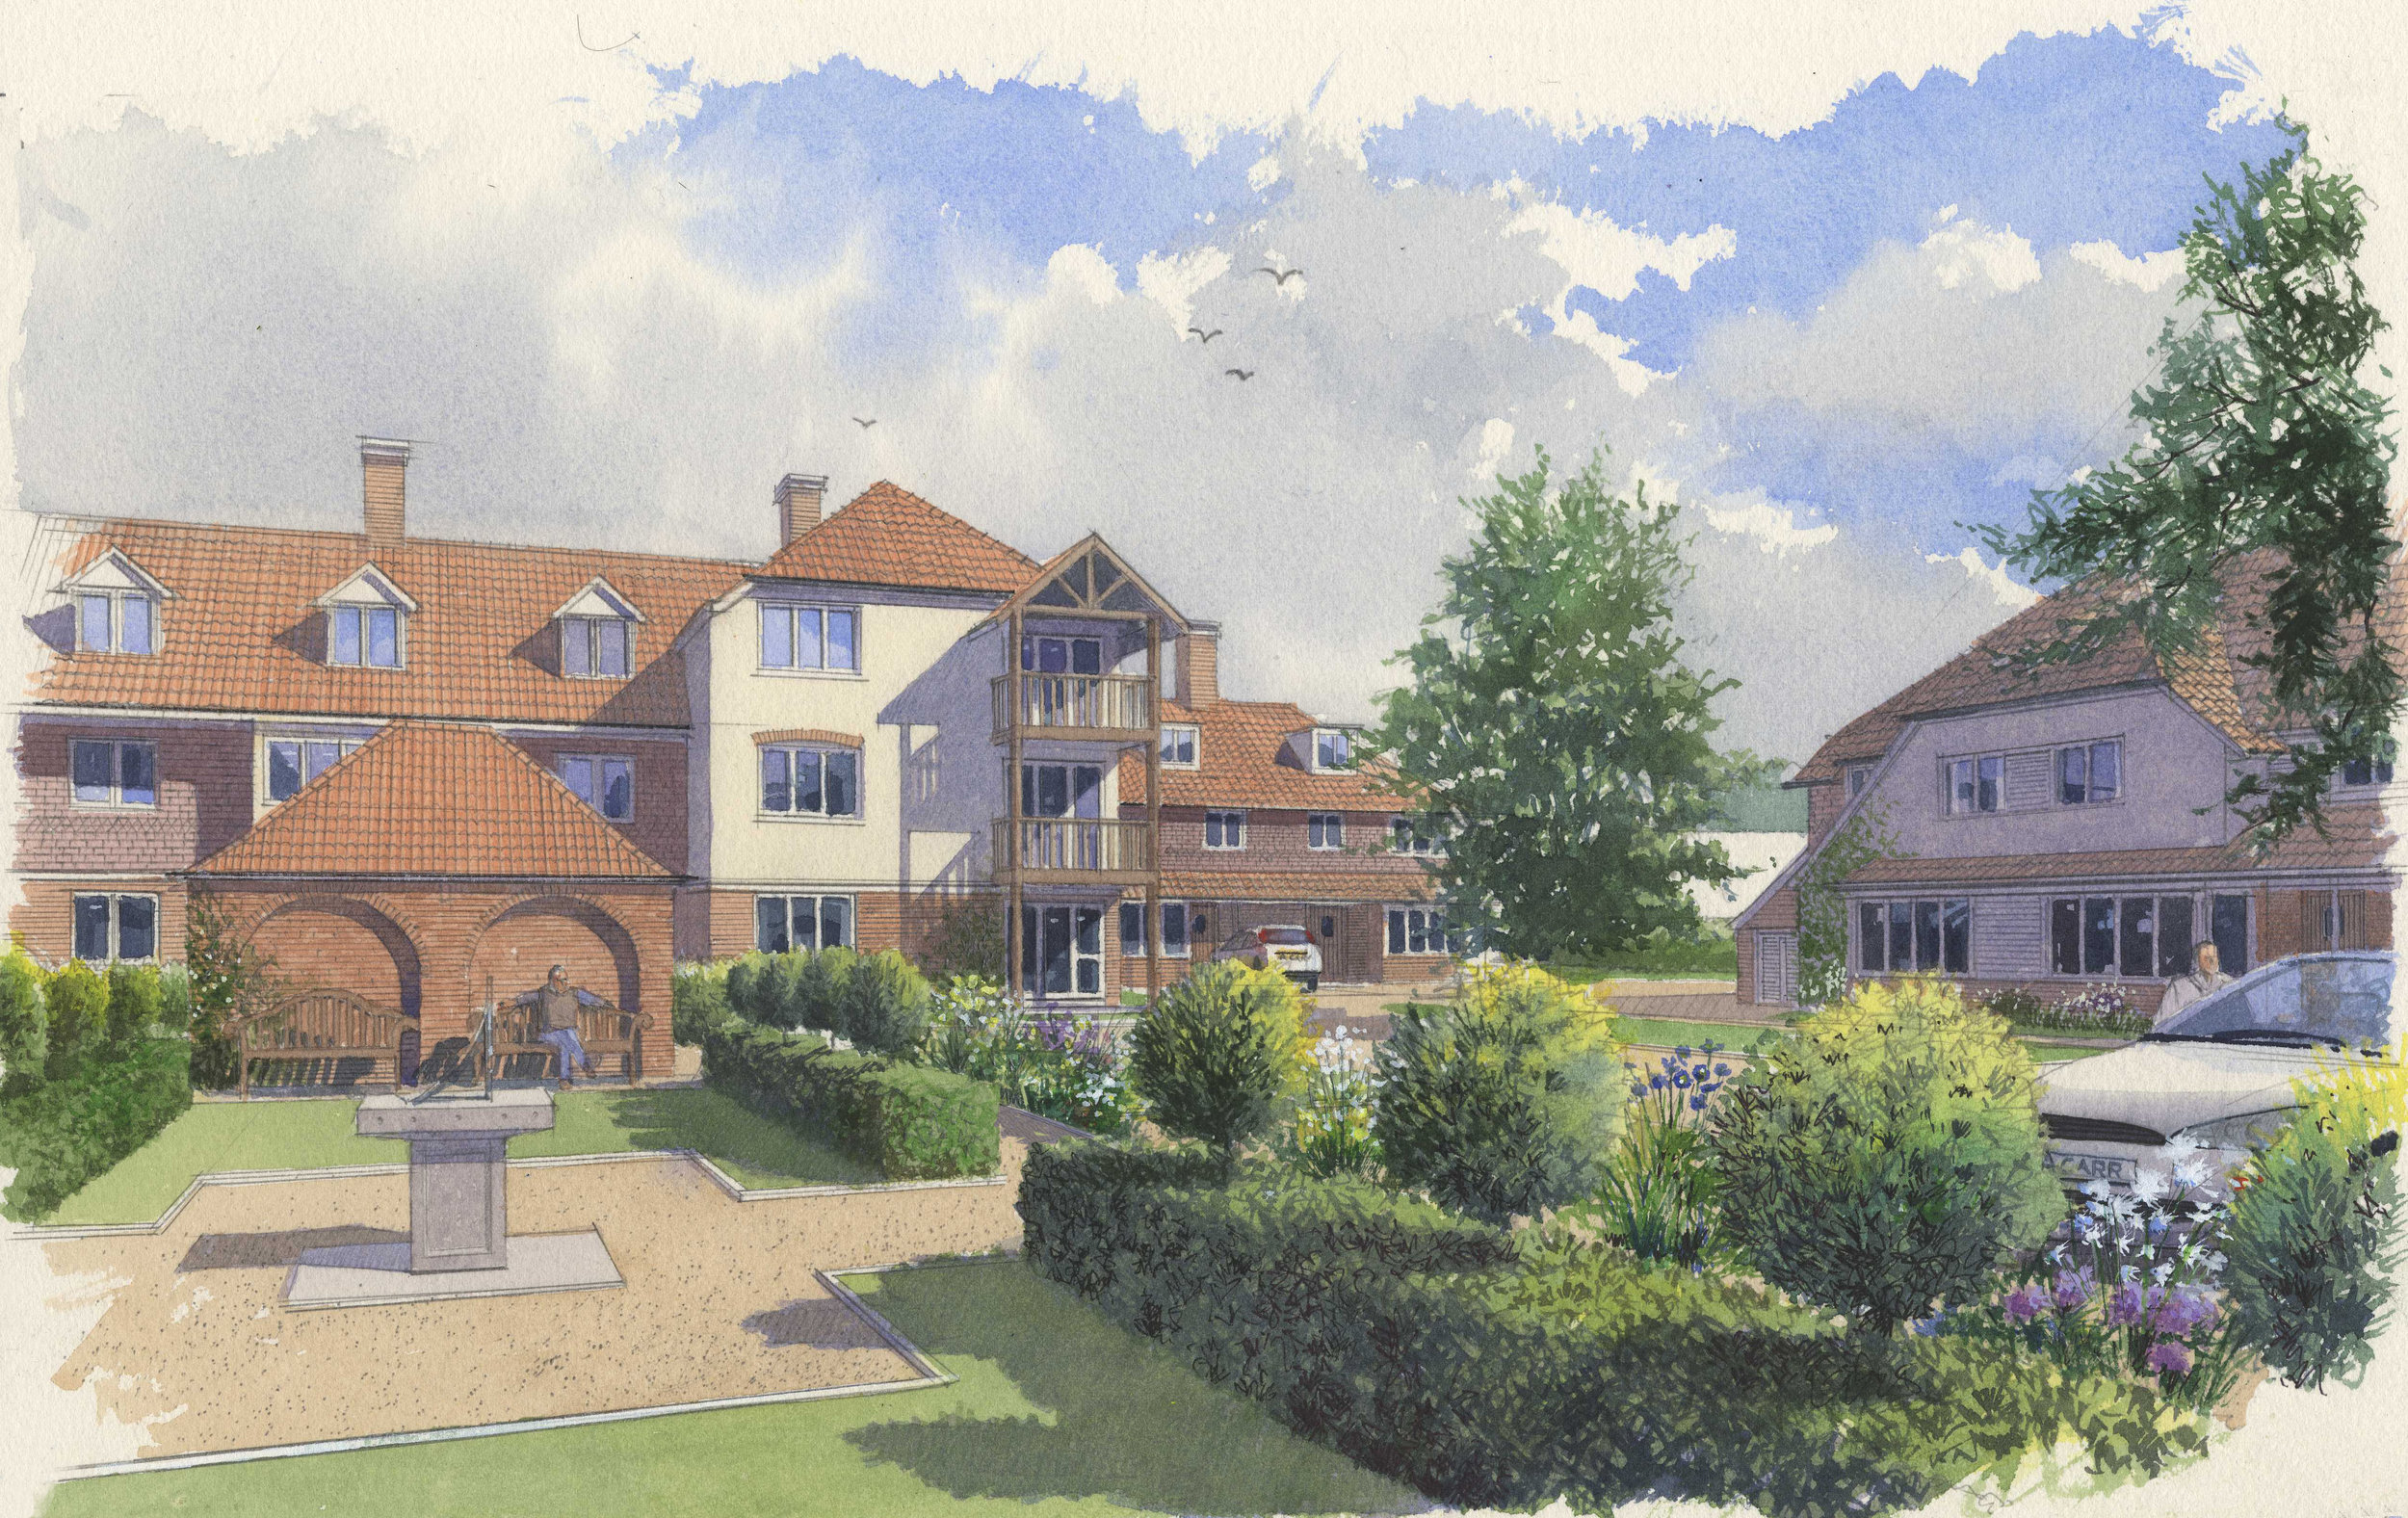 St Albans - We can now announce that St Albans District Council has granted planning consent for our scheme on Townsend Drive, St Albans. The proposals for Beechcroft Developments are for retirement housing on the site of the former Maryland Convent.